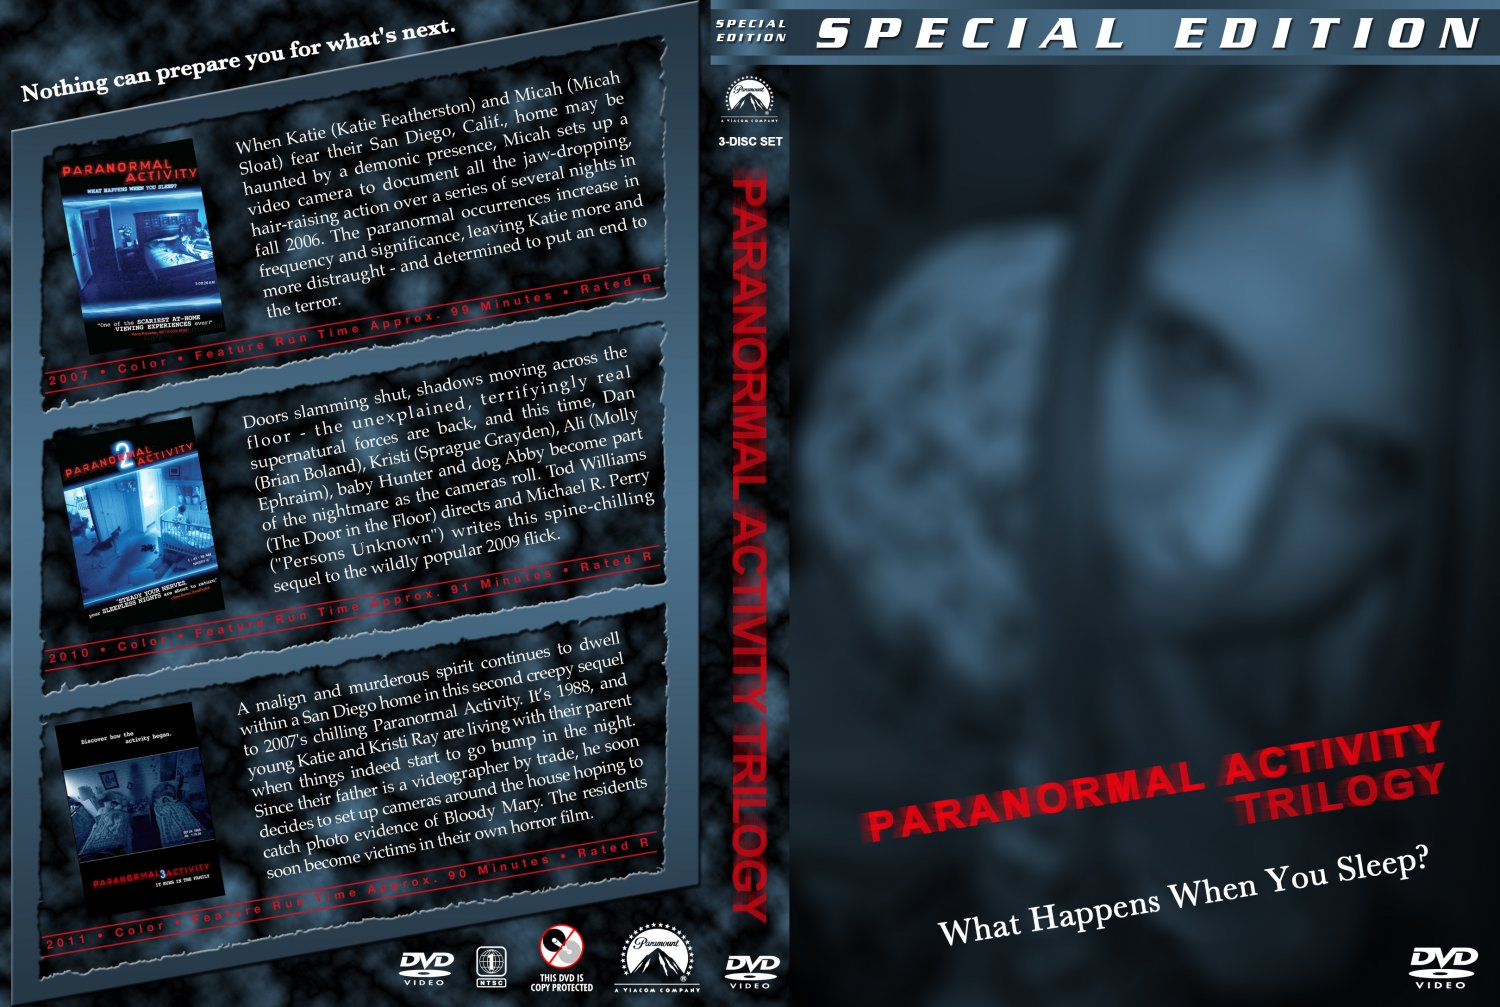 paranormal activity 5 cover - photo #11